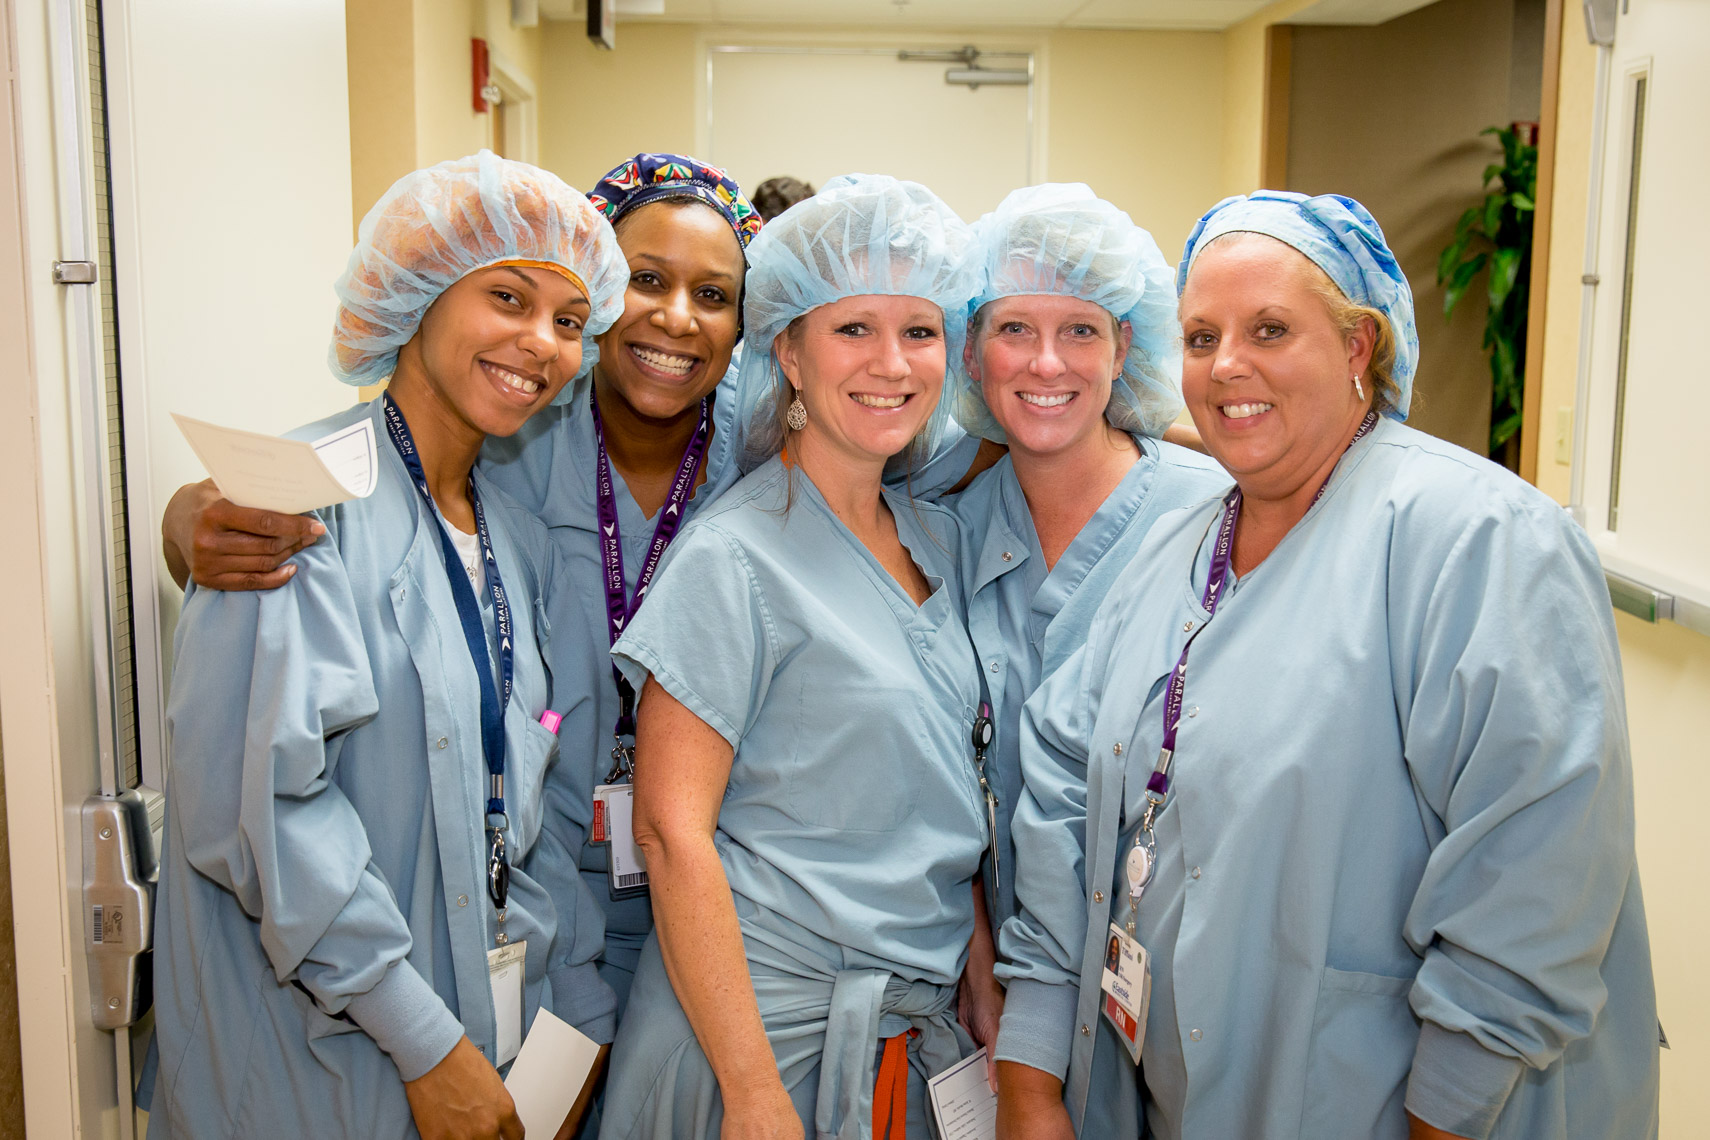 Photography of Medical Team in Atlanta